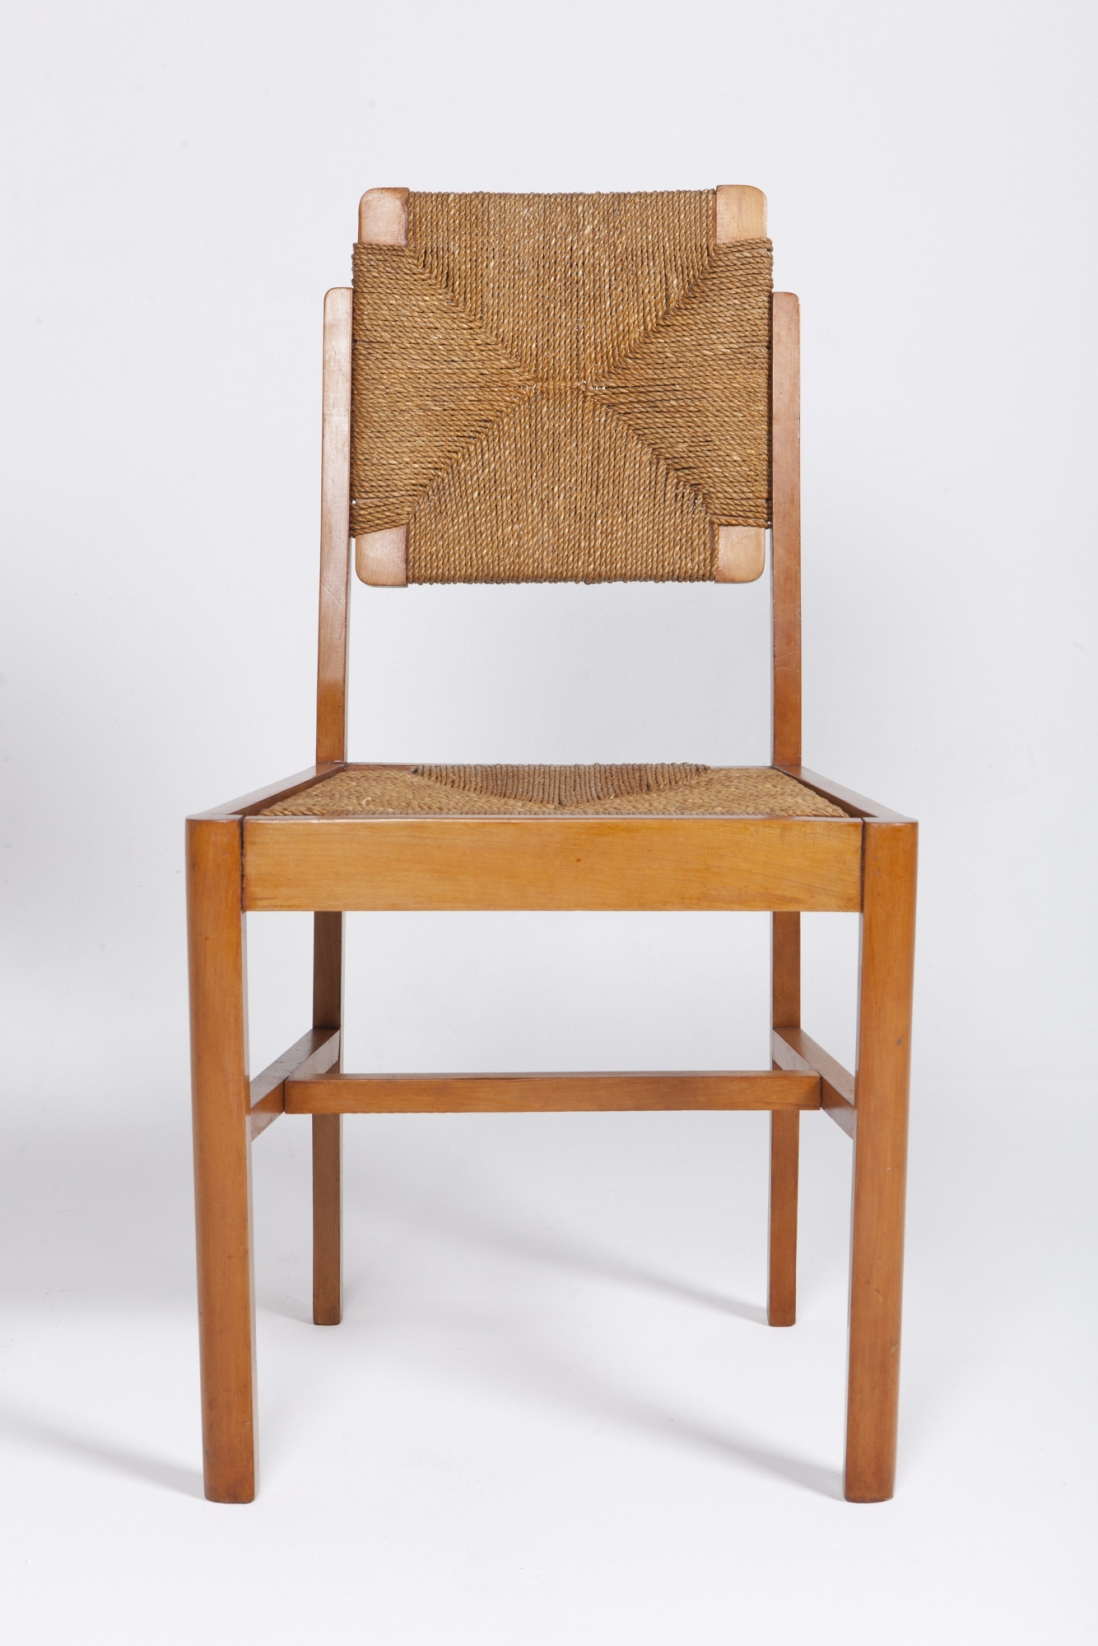 chair side book stand party city covers kalmar interiors sydney living museums